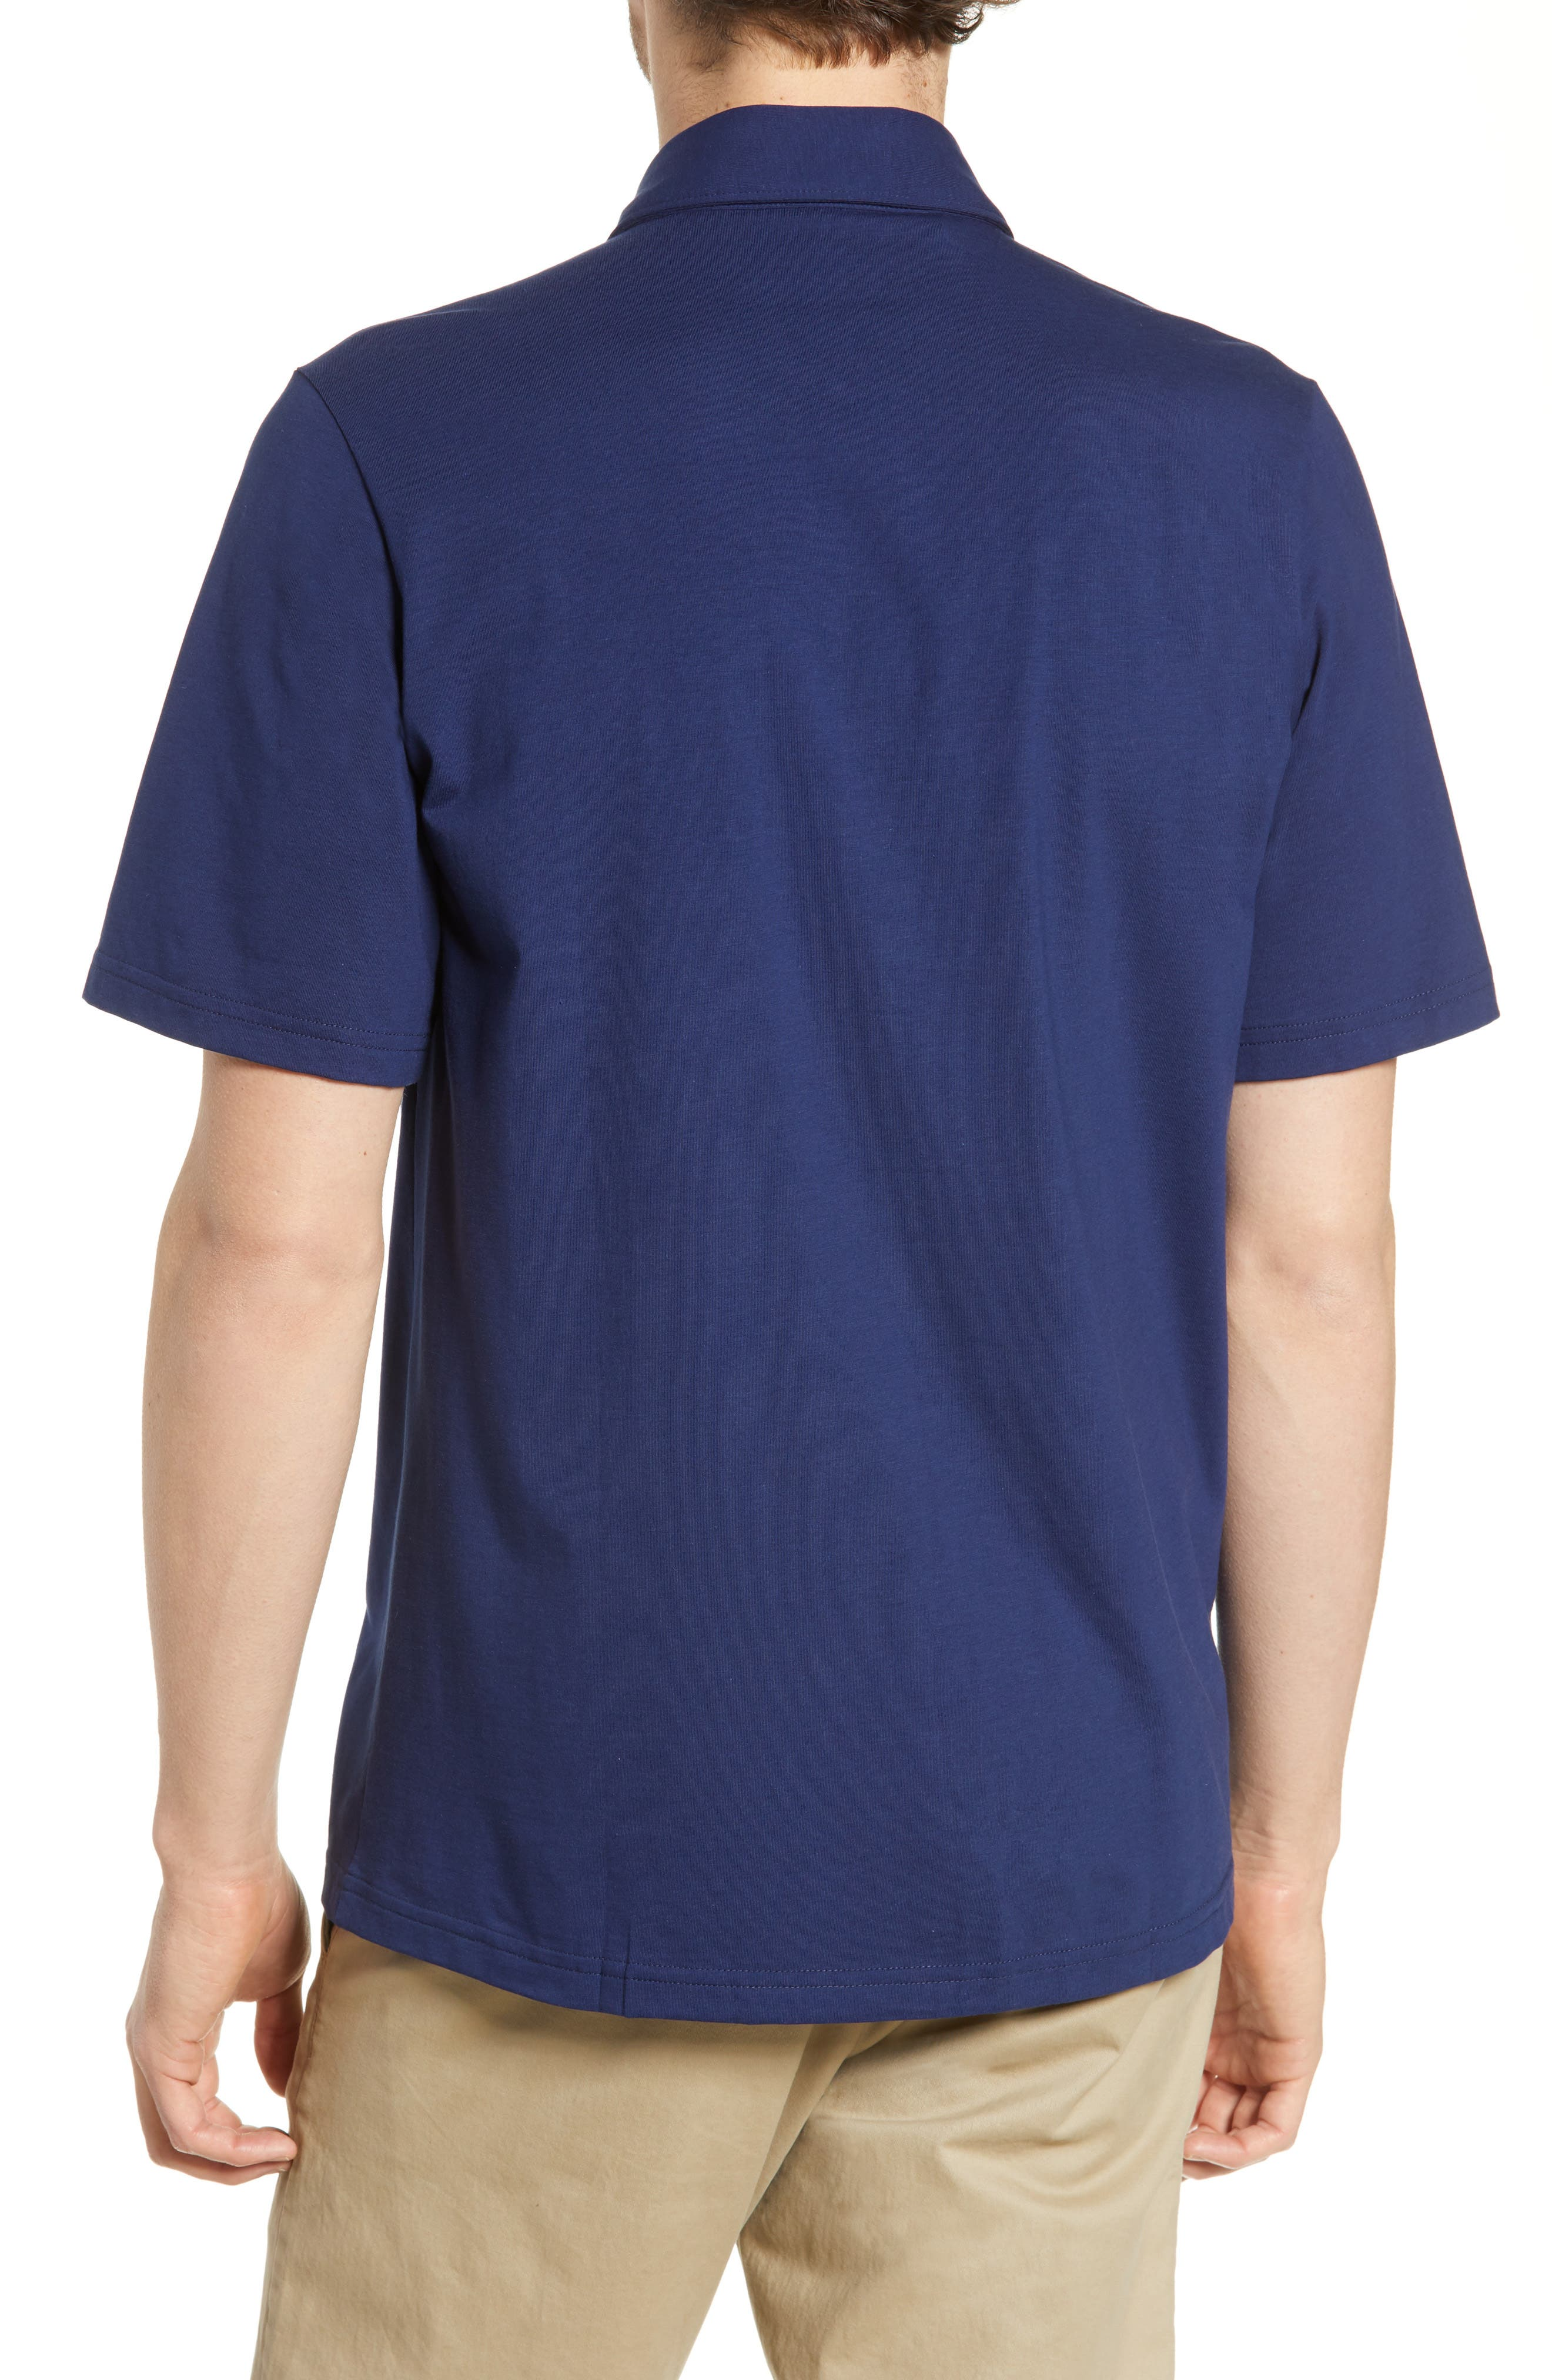 CRIQUET, Players Stretch Jersey Polo, Alternate thumbnail 2, color, NAVY